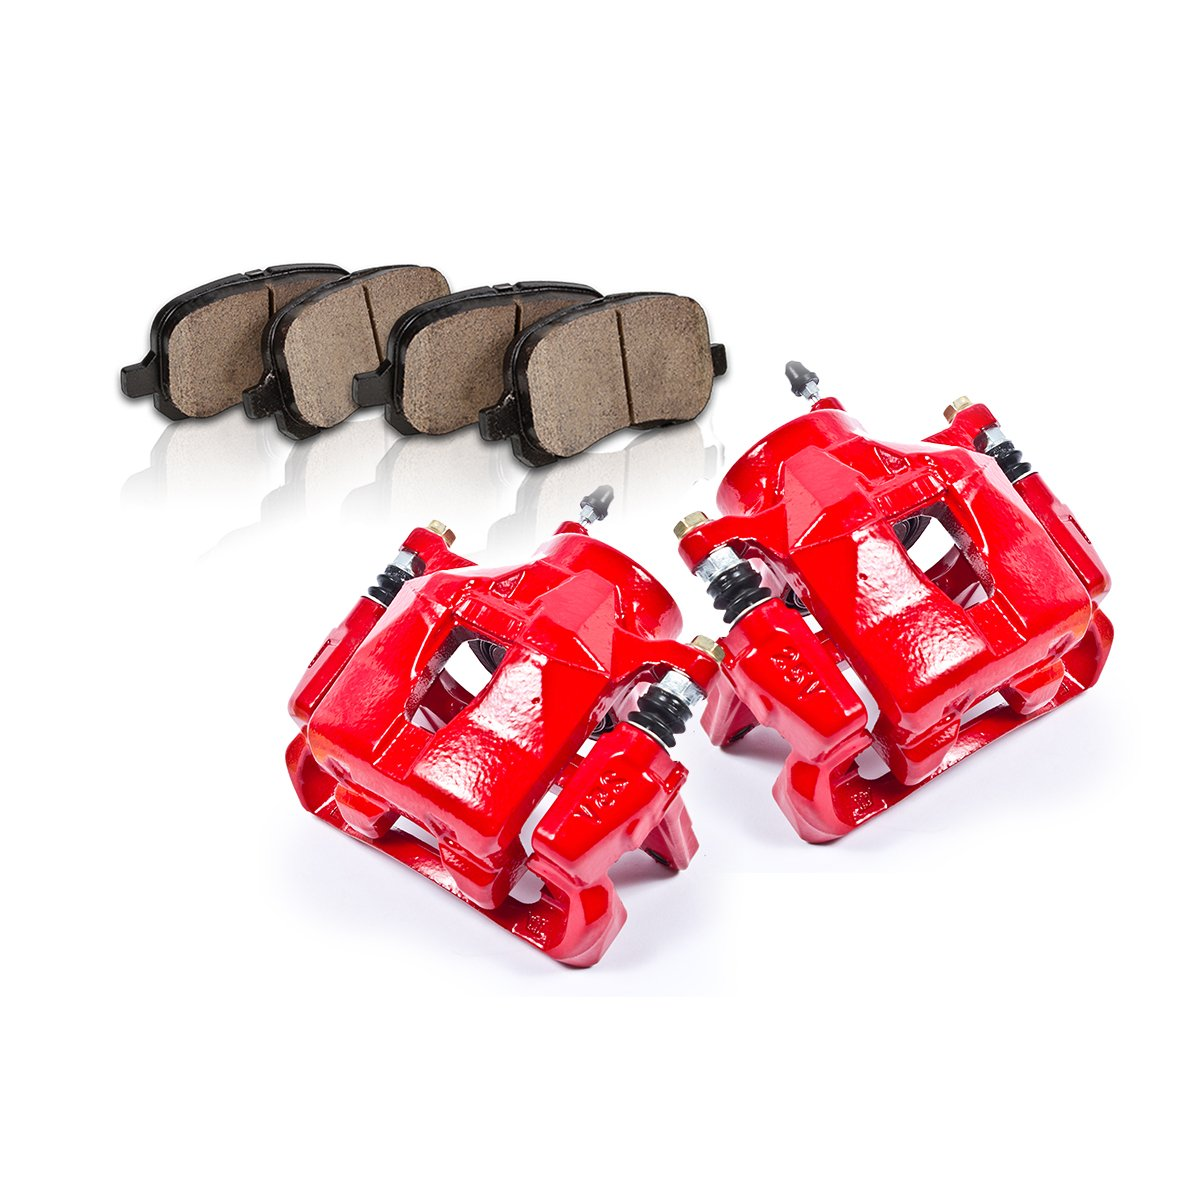 Callahan [ 2 ] FRONT Performance Grade Semi-Loaded Red Caliper Set + Ceramic Brake Pads front left brake caliper brake shoe of cfmoto 500cc atv cfmoto 500 atv cfx6 x8 brake system 9010 080700